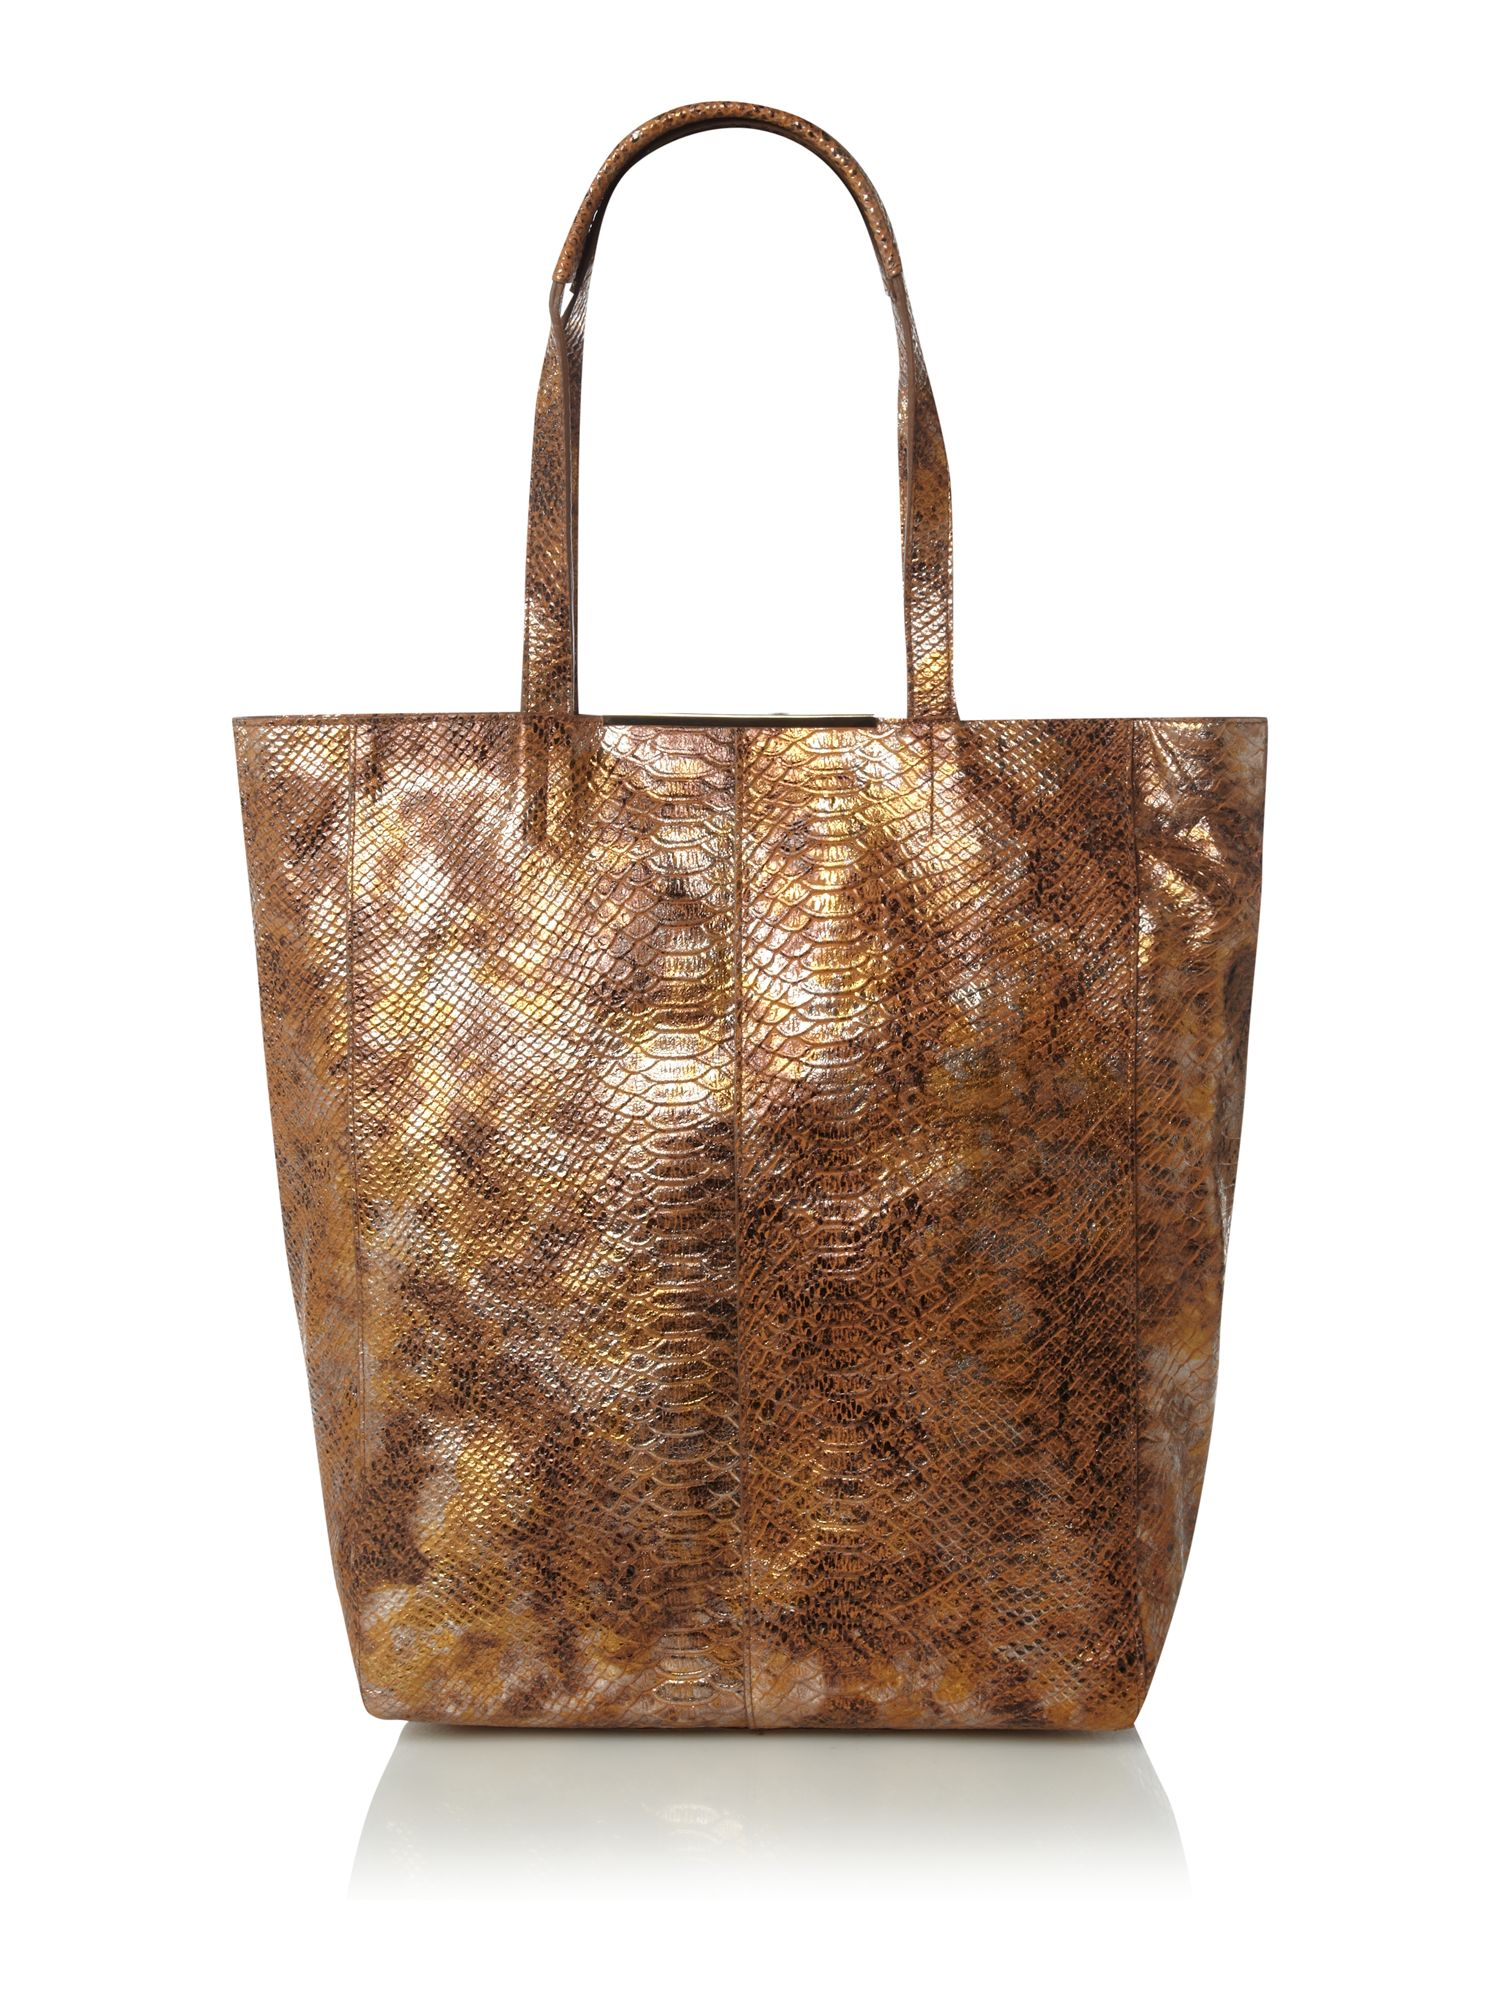 Mary Portas Tote Bag in Metallic (Brown)